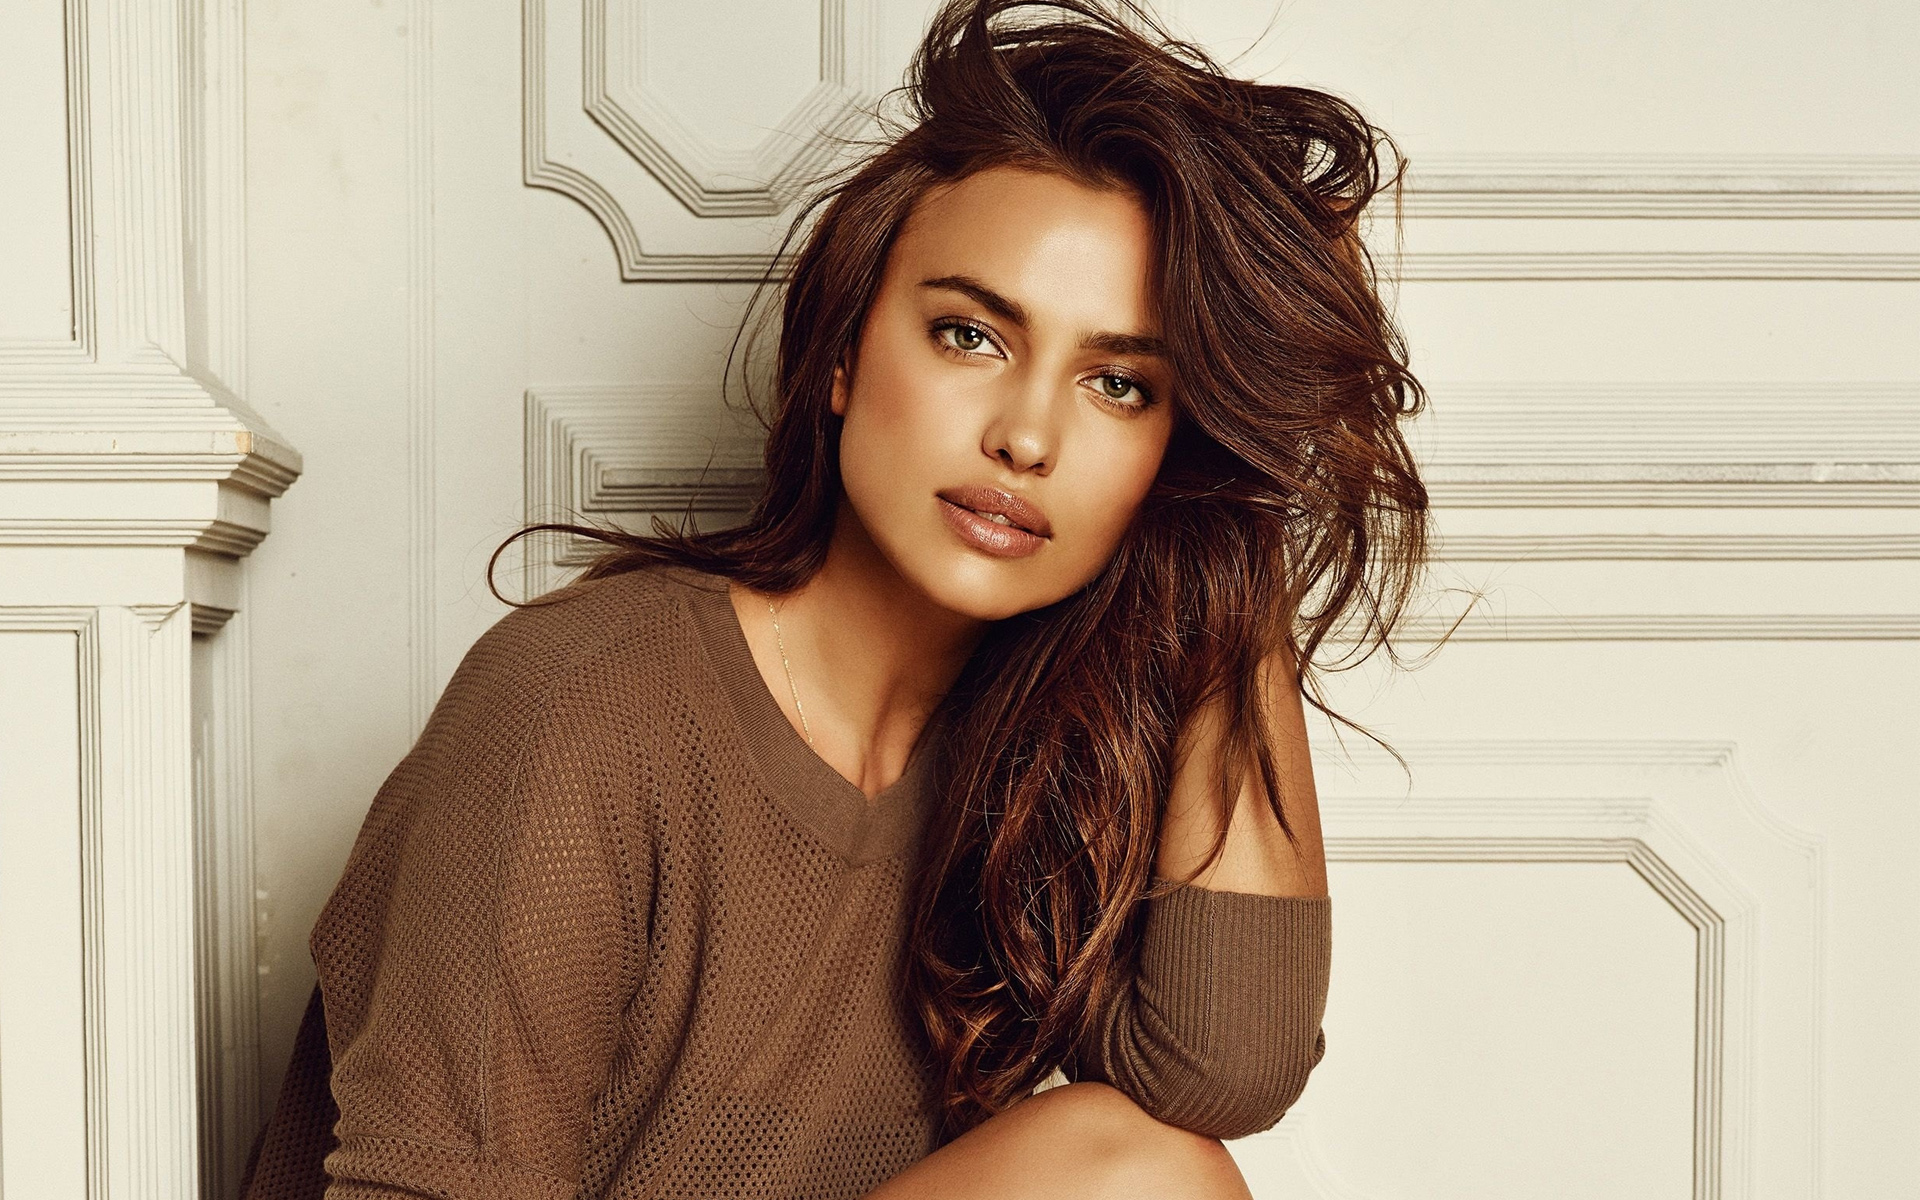 Irina Shayk 12 wallpaper